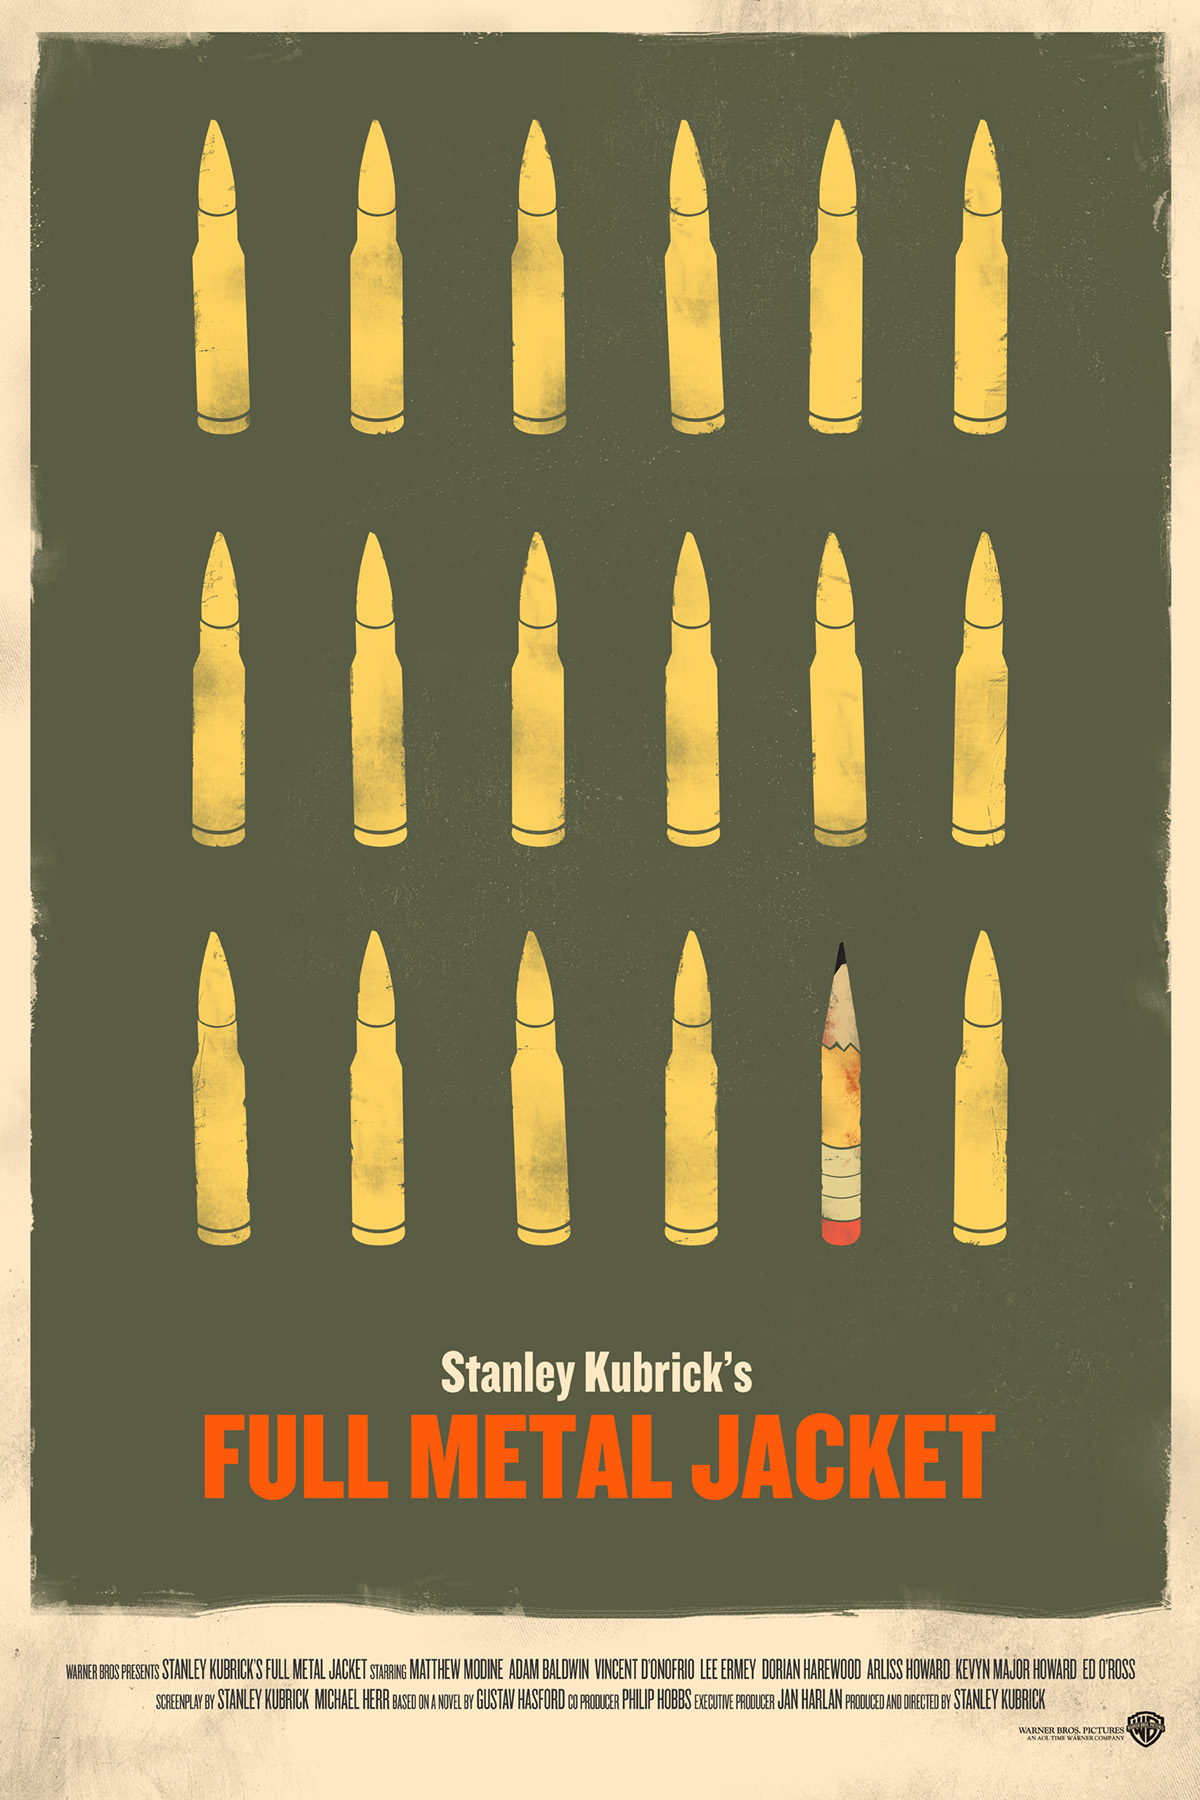 full metal jacket essay View essay - full metal jacket essay from history 3 at del mar high abstract: stanley kubricks film, full metal jacket, is a story that illustrates a young american.